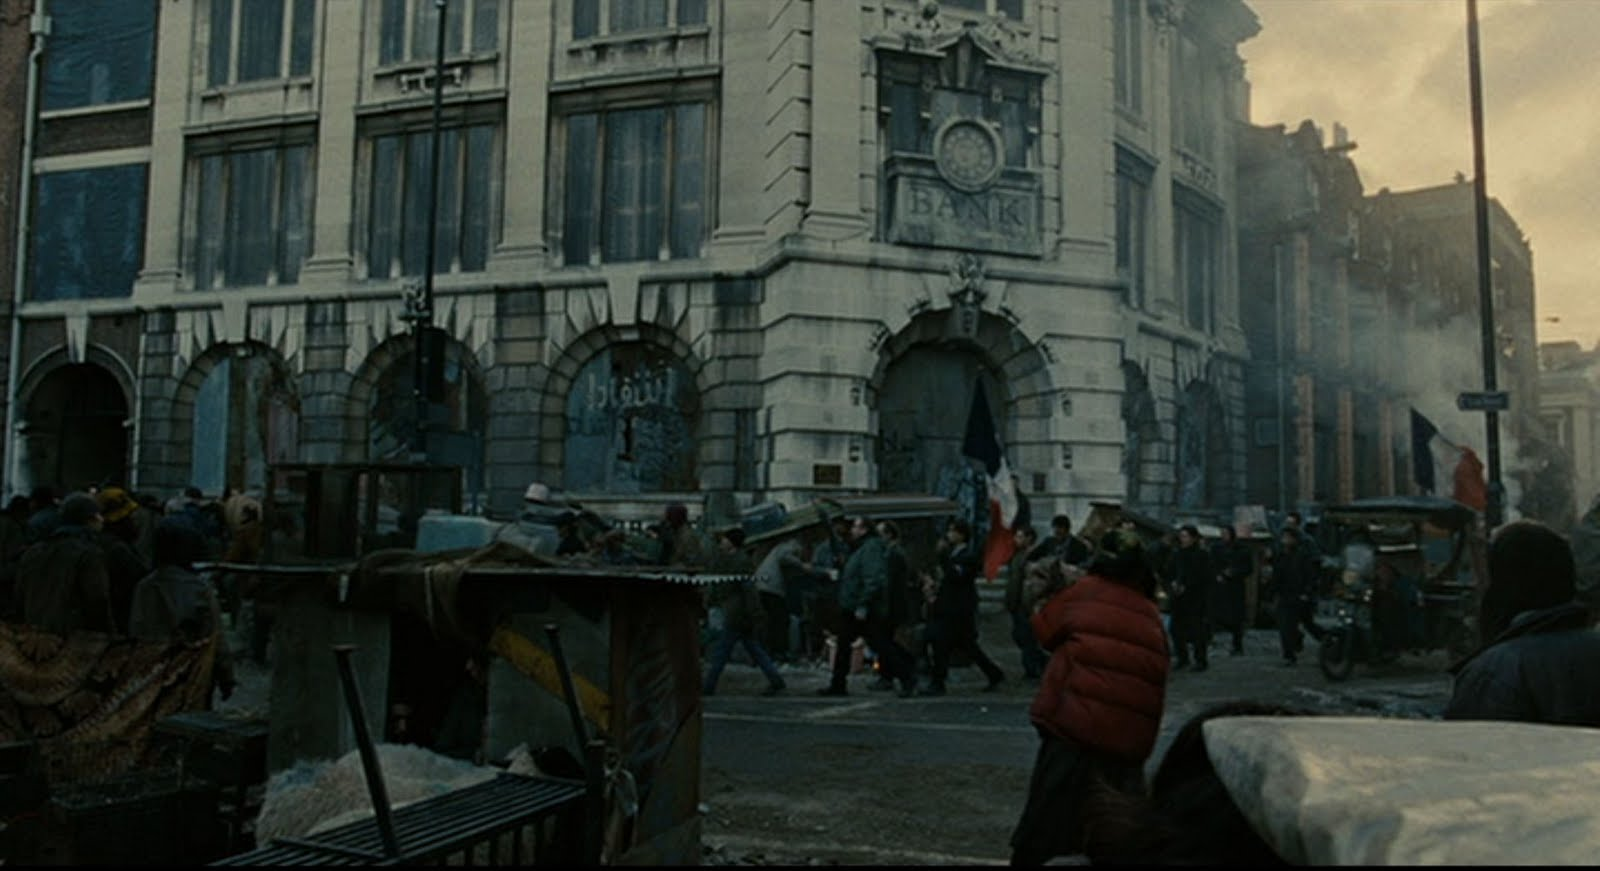 Term papers on children of men movie